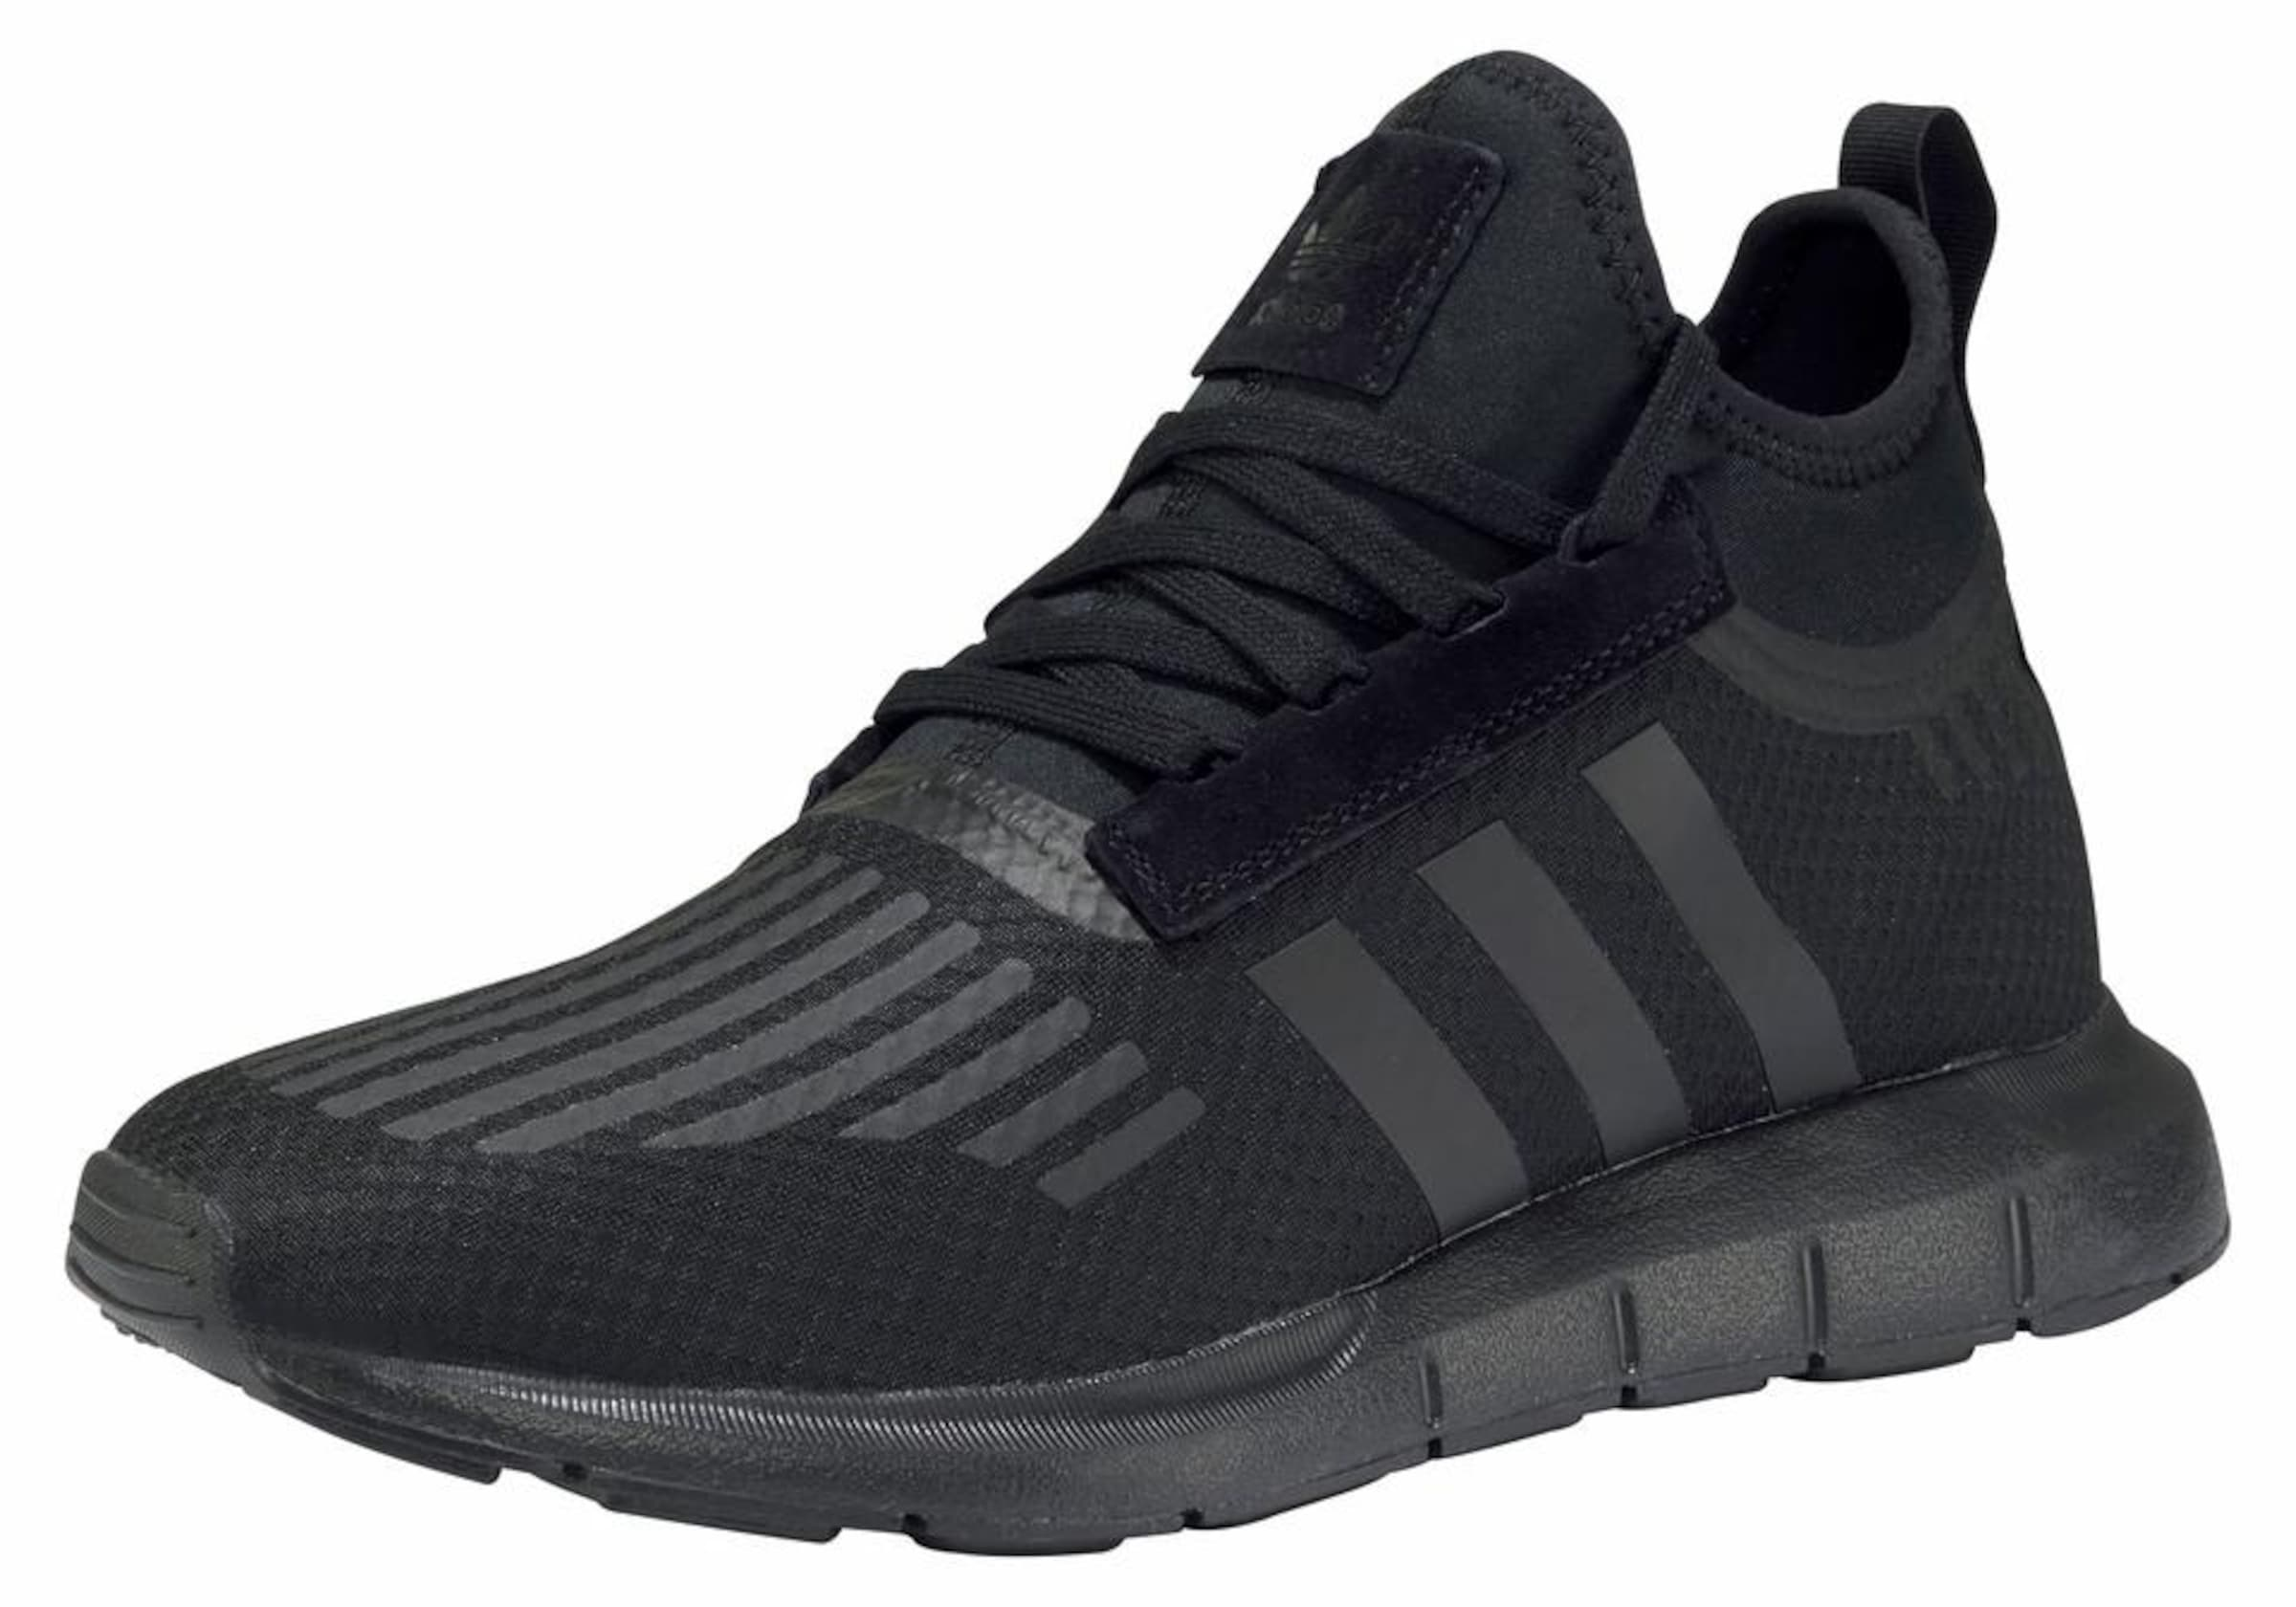 'swift Schwarz Barrier' Run Originals Adidas In Sneaker m0vnOy8Nw